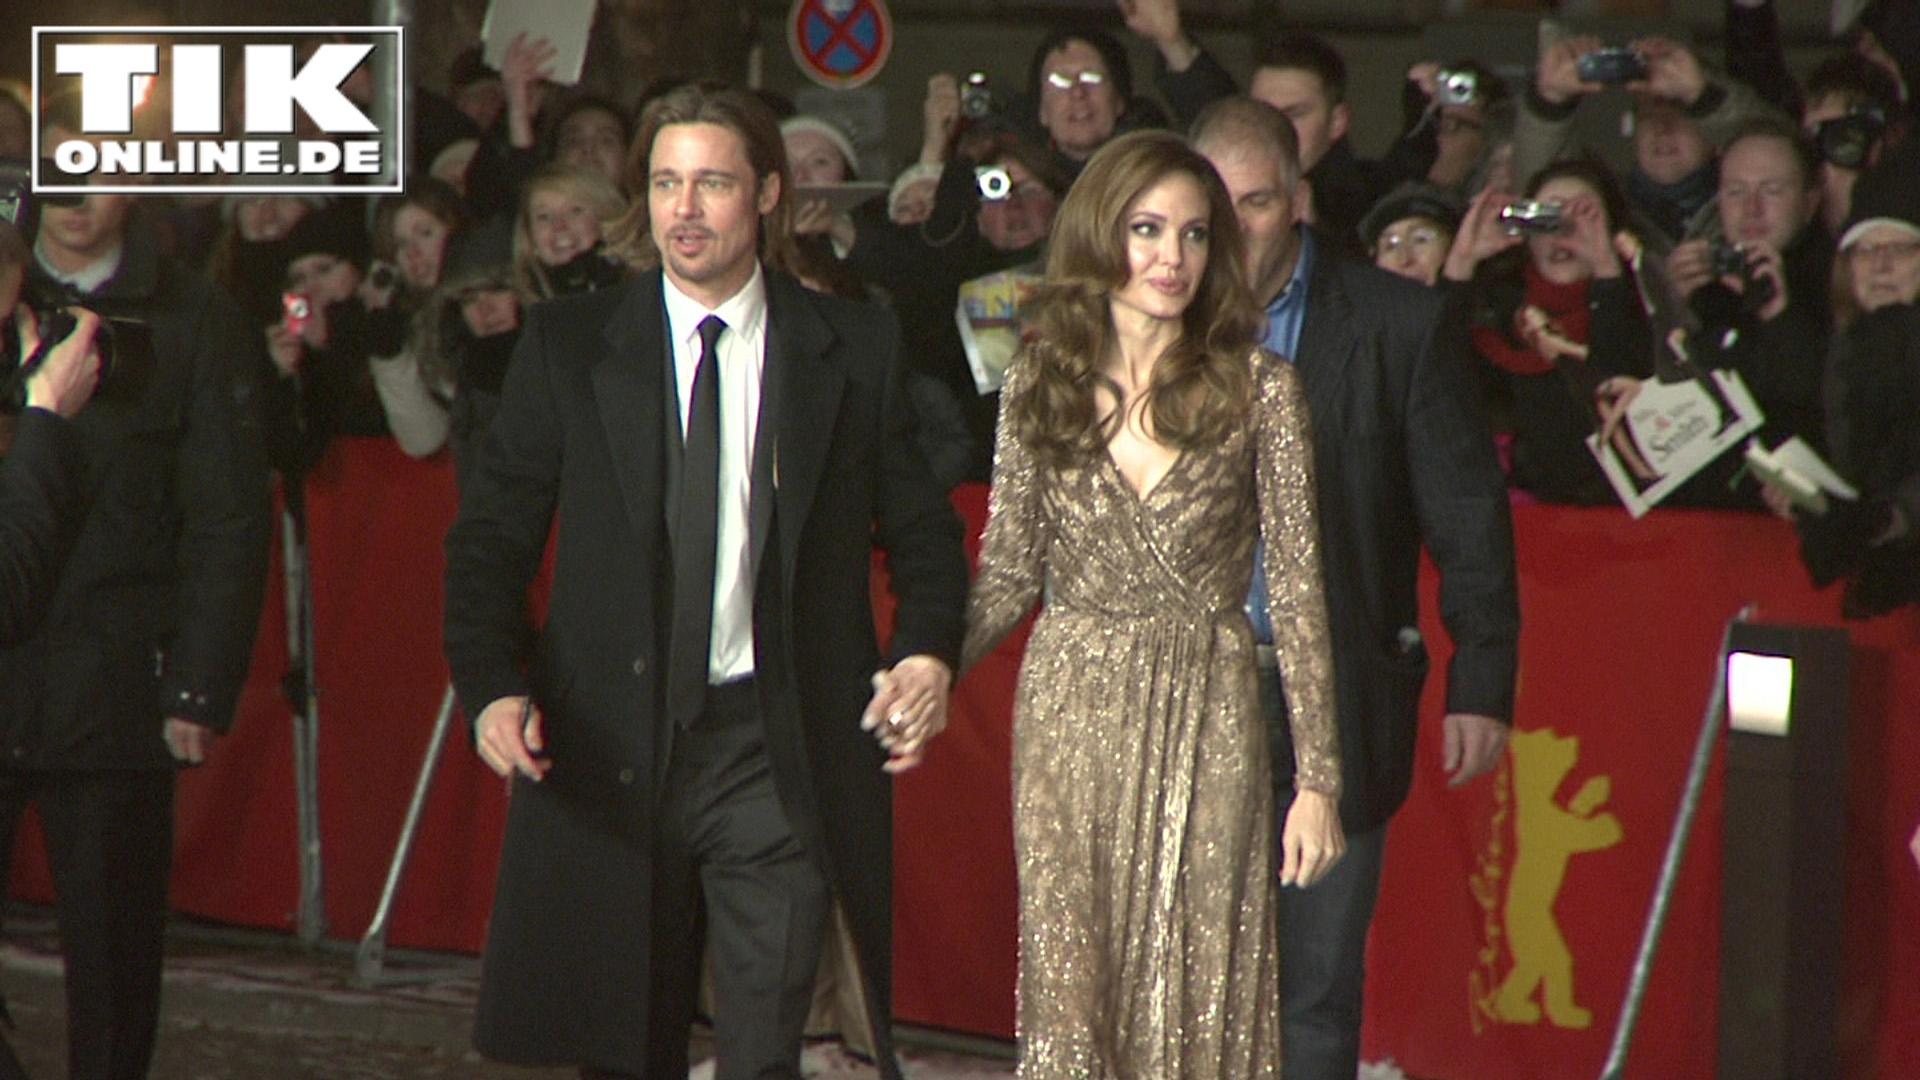 Brangelina in Berlin